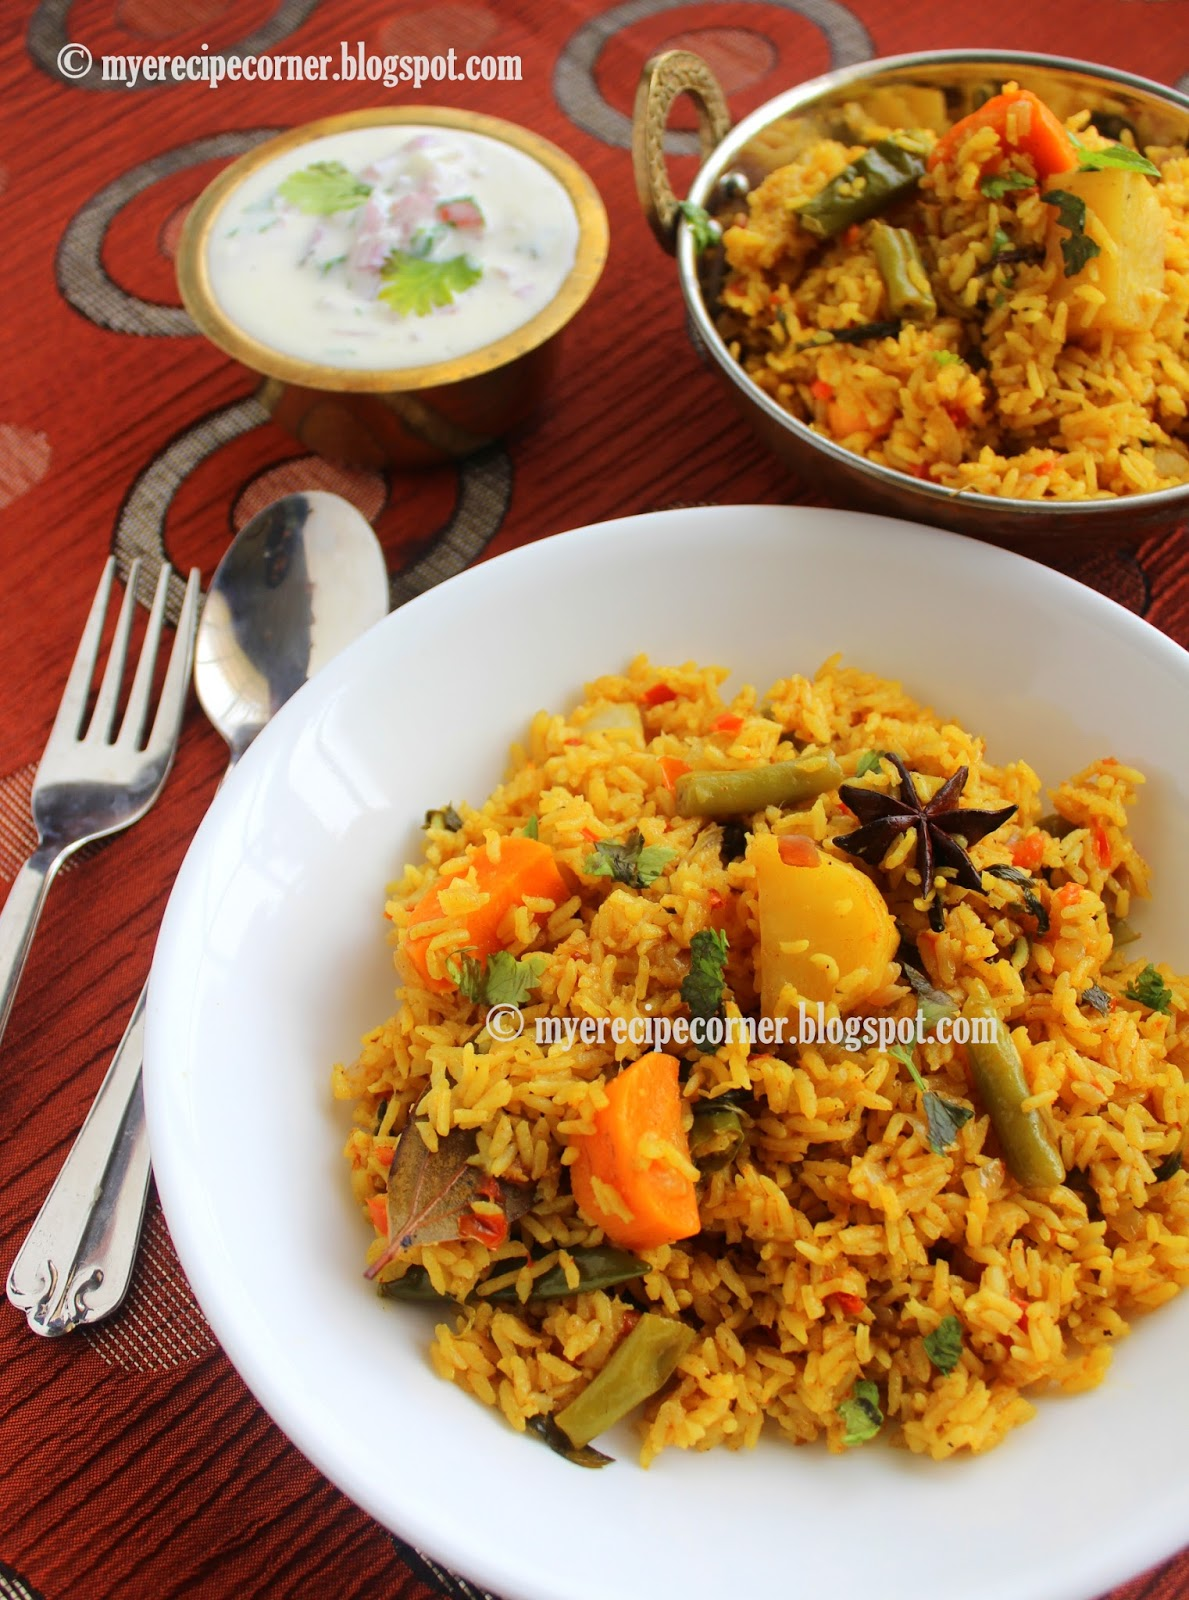 Chettinad vegetable biryani kaikari biryani chettinad recipes chettinad vegetable biryani recipe forumfinder Image collections